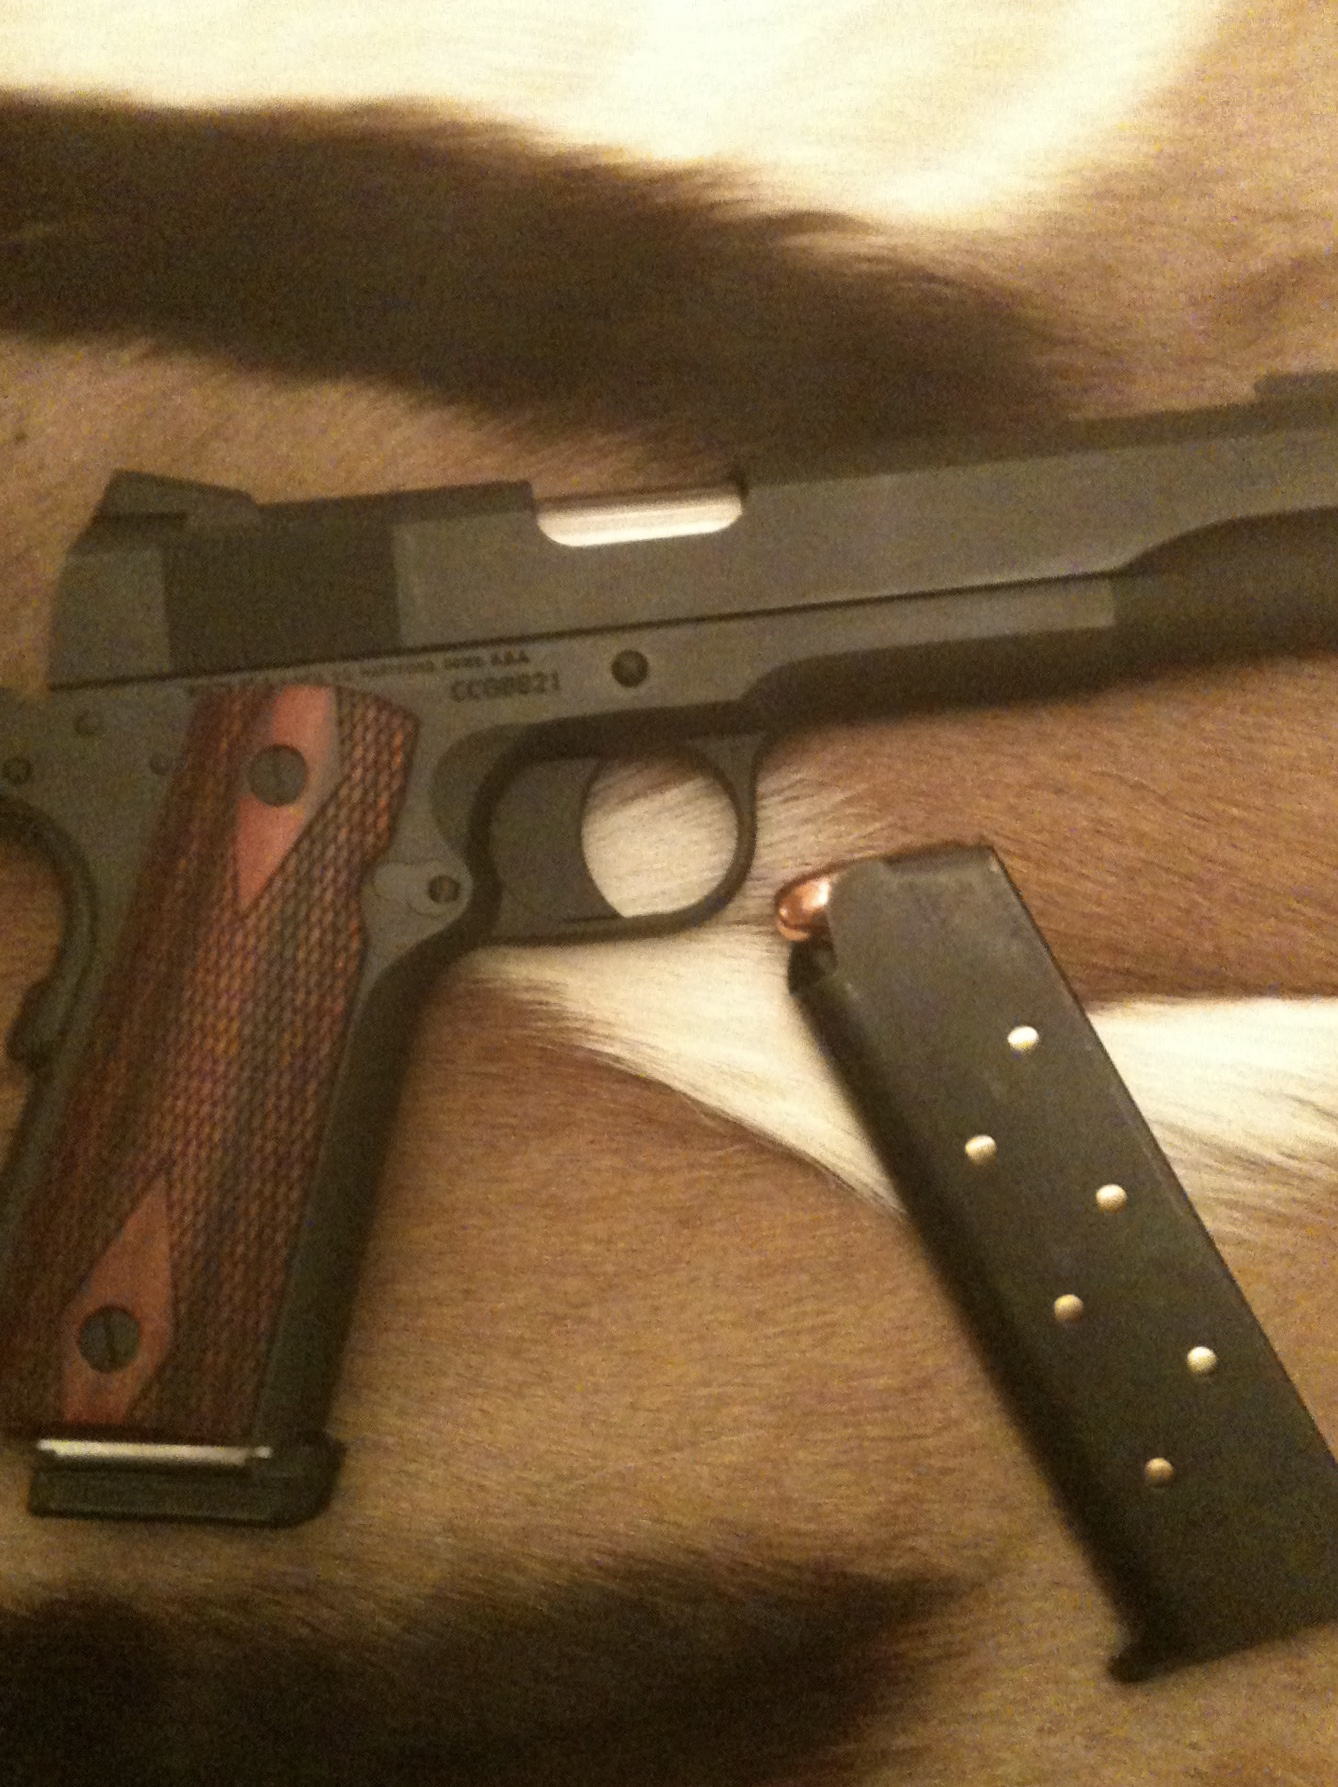 """The """"addiction"""" is STILL STRONG with this one! OK, """"Cough up"""" your 1911s !!-227349f4-0014-4d68-b9b2-e19cb794c575.jpeg"""